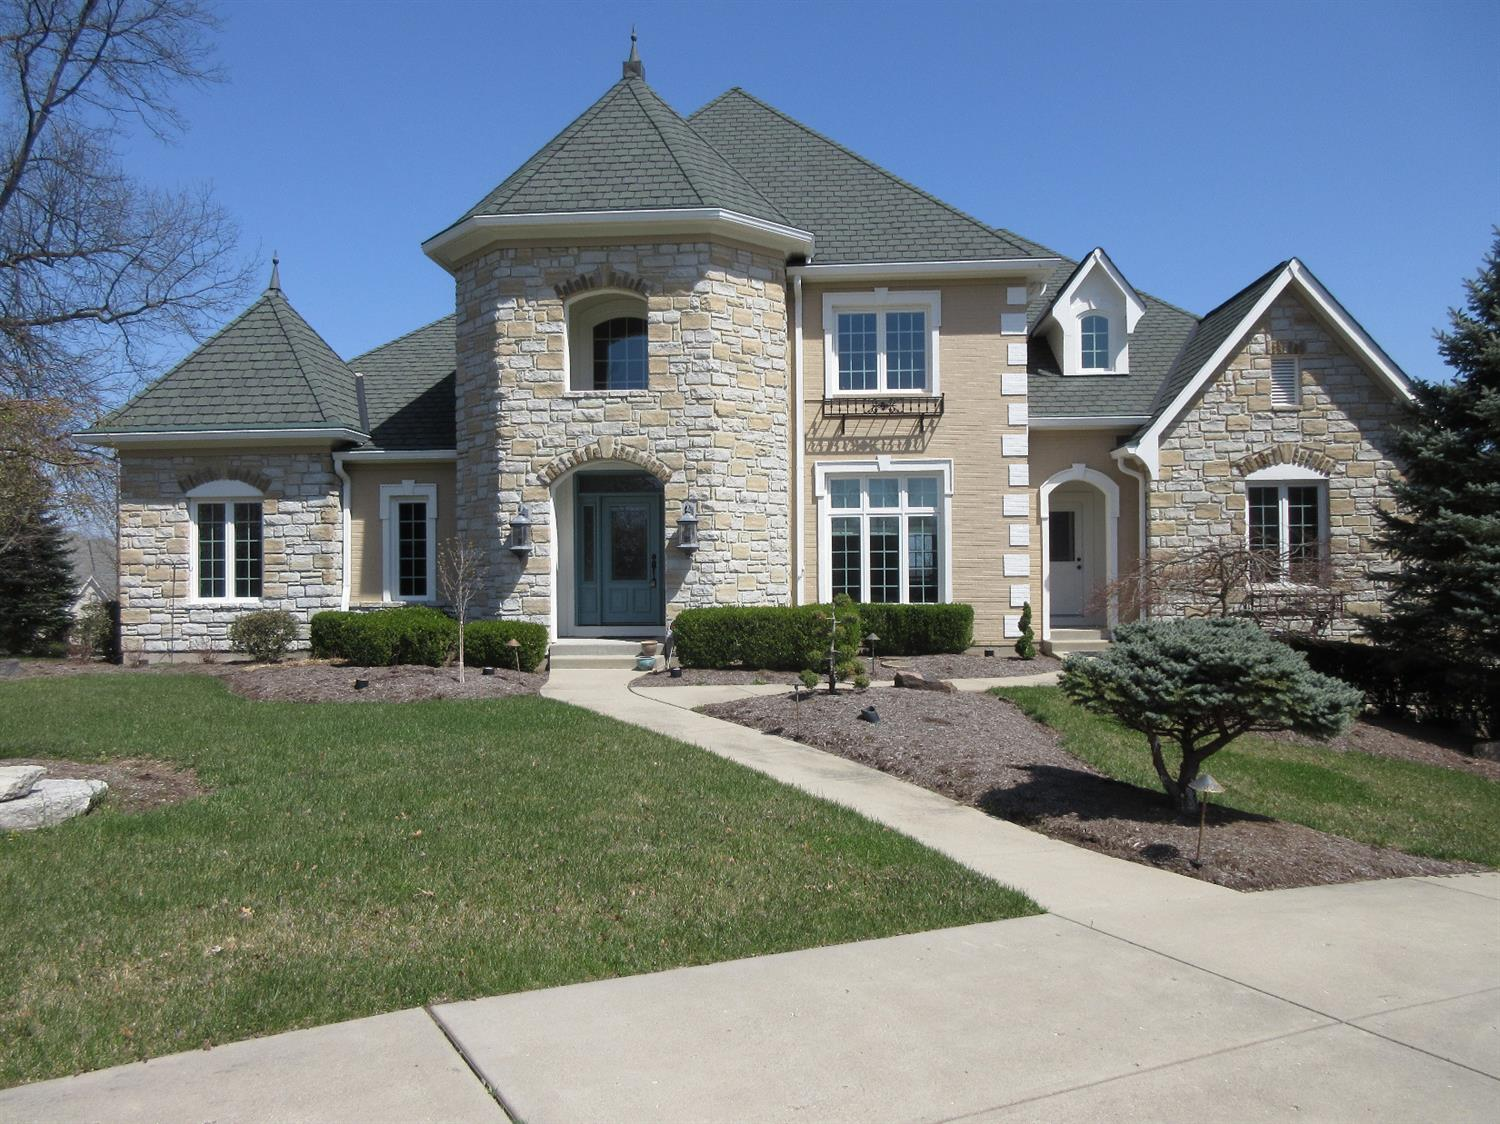 5034 Tanglewood Park Dr Miami Twp. (West), OH